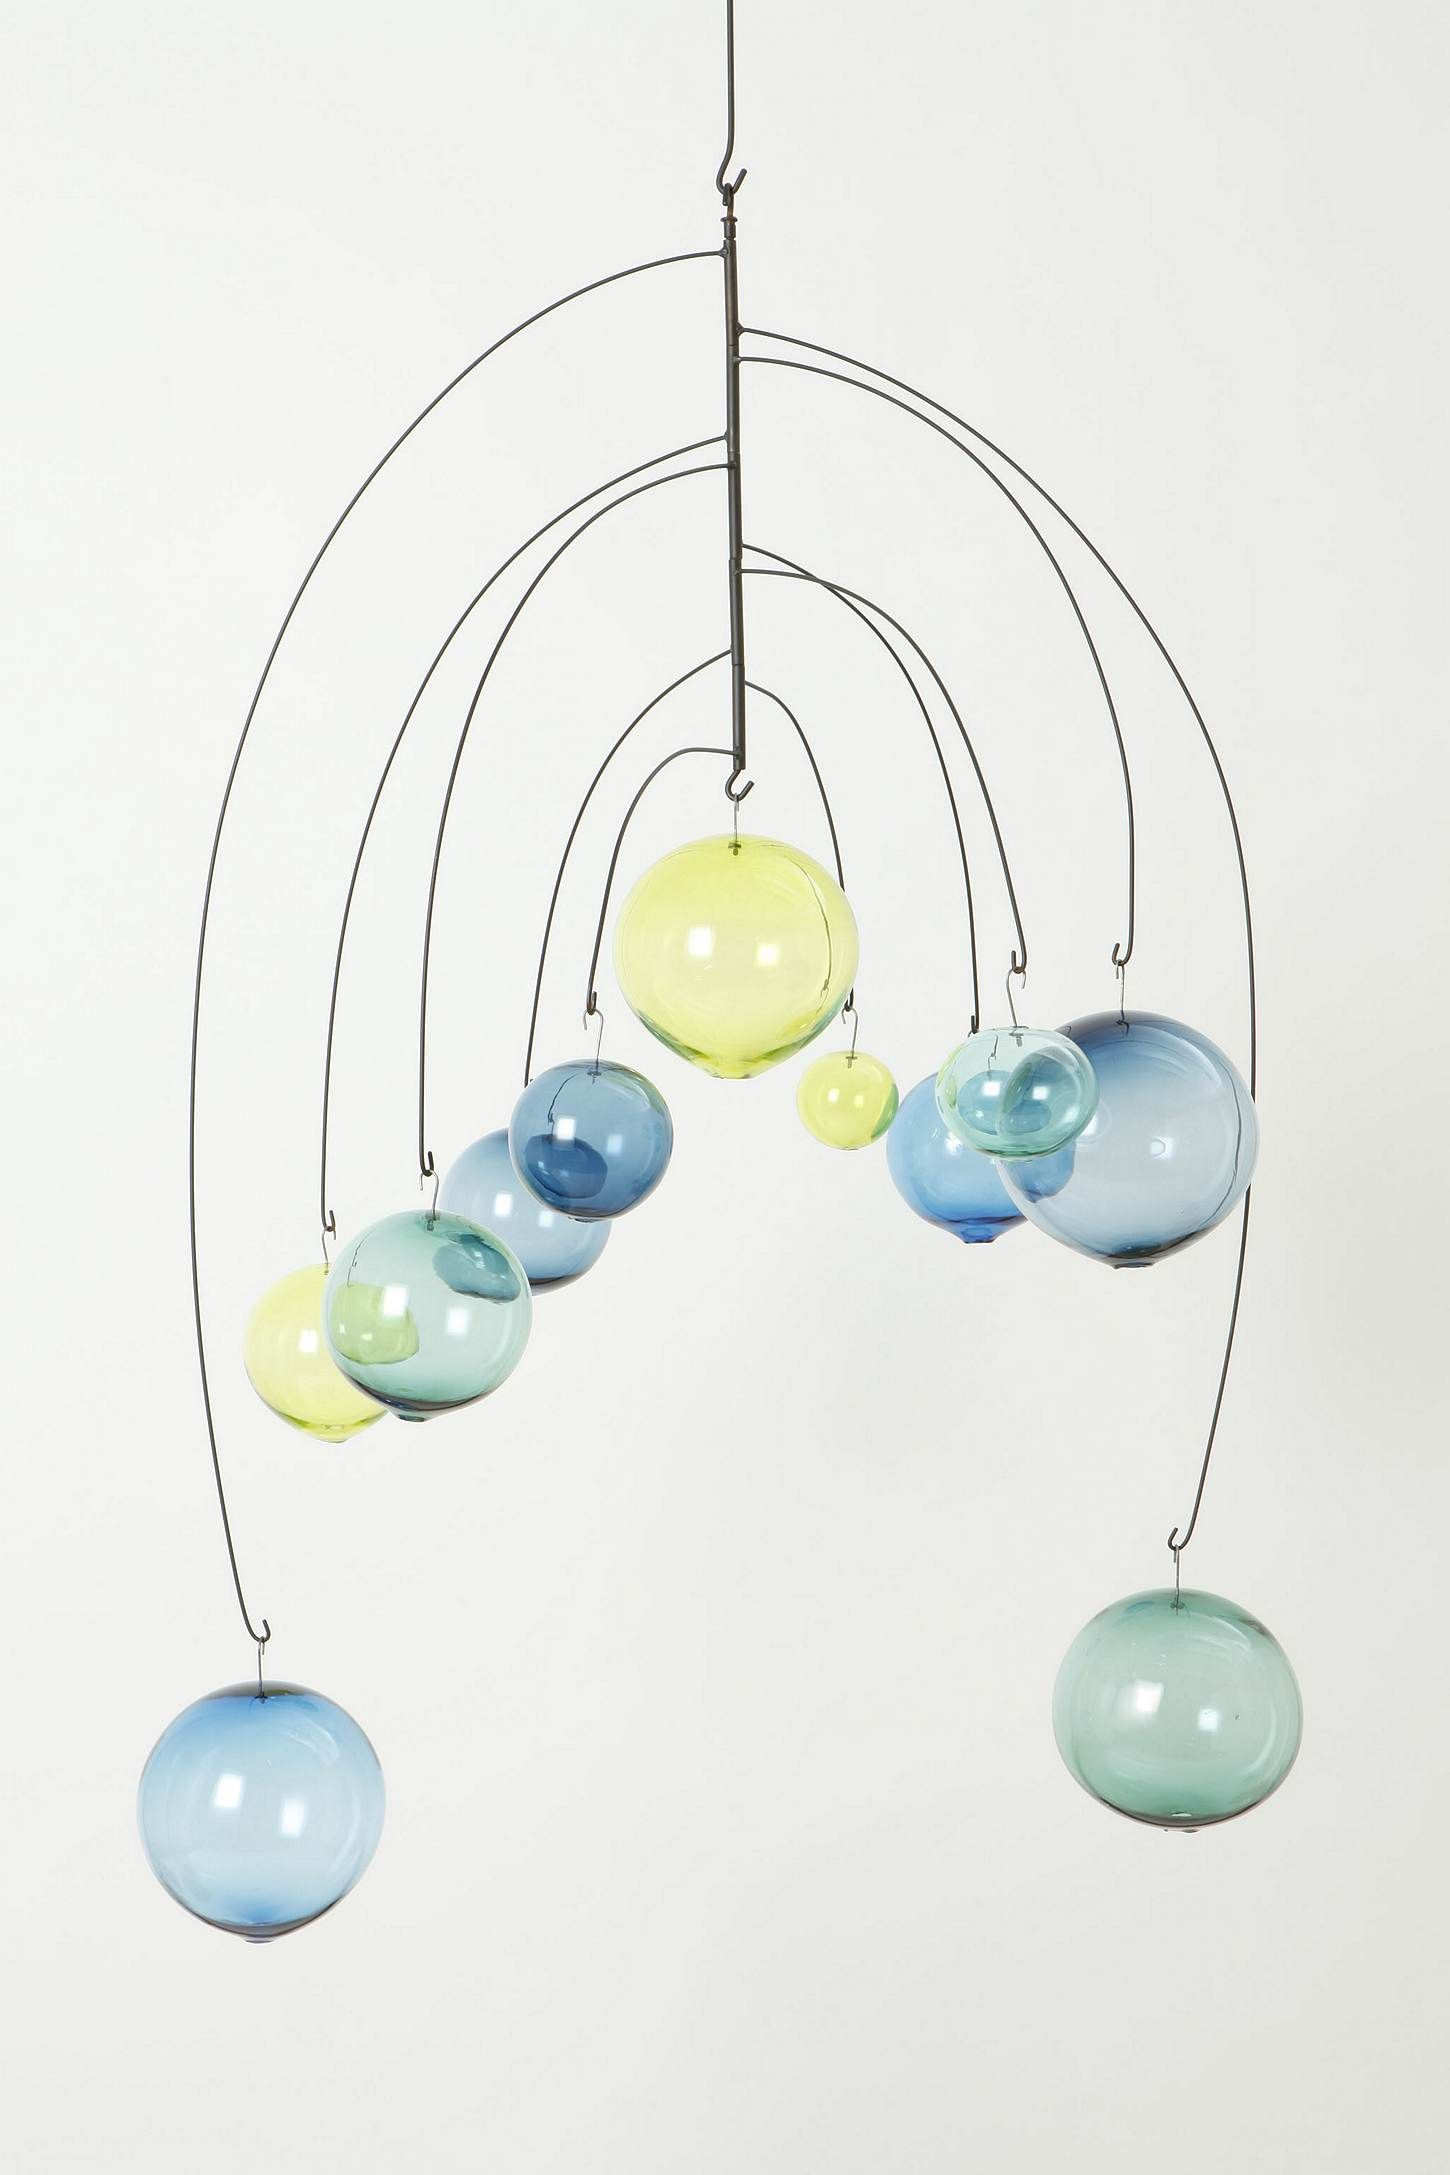 Anthropologie - $798, pretty sure I could DIY it for less than 50 bucks